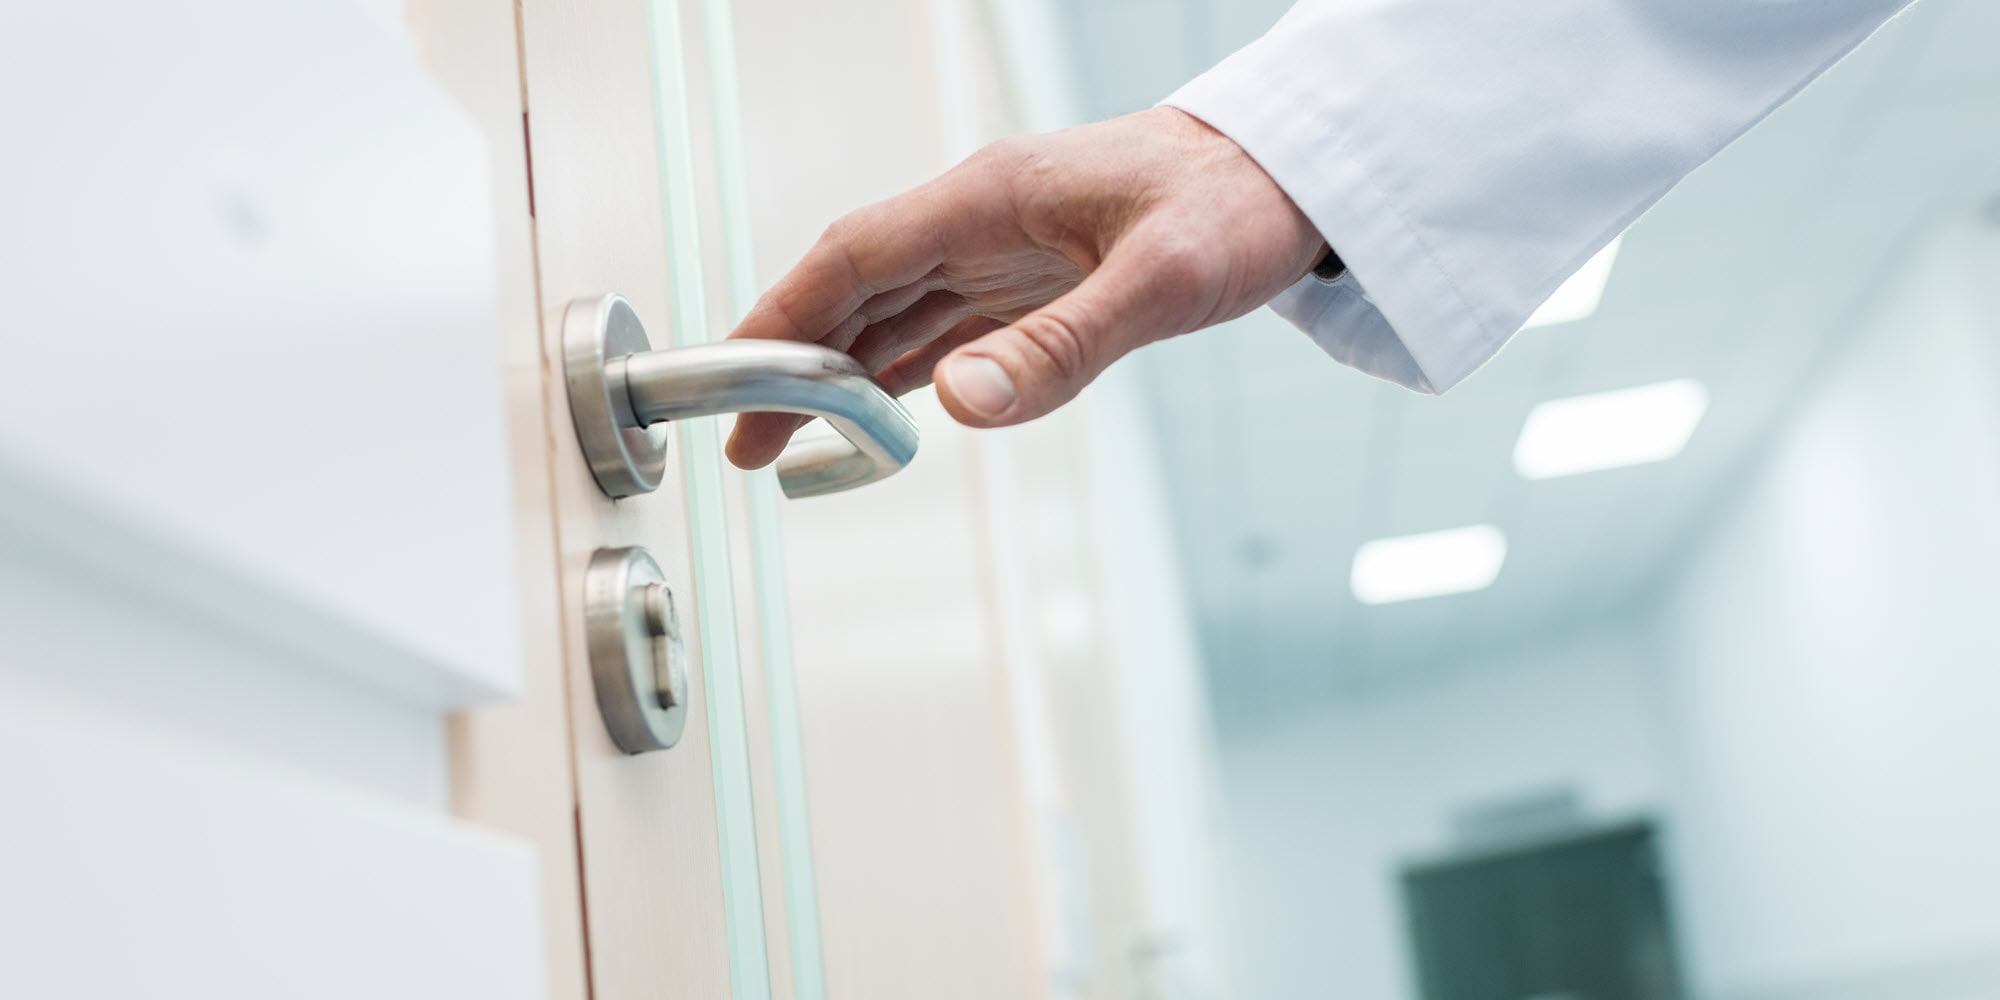 Surface contamination with person touching hospital door.